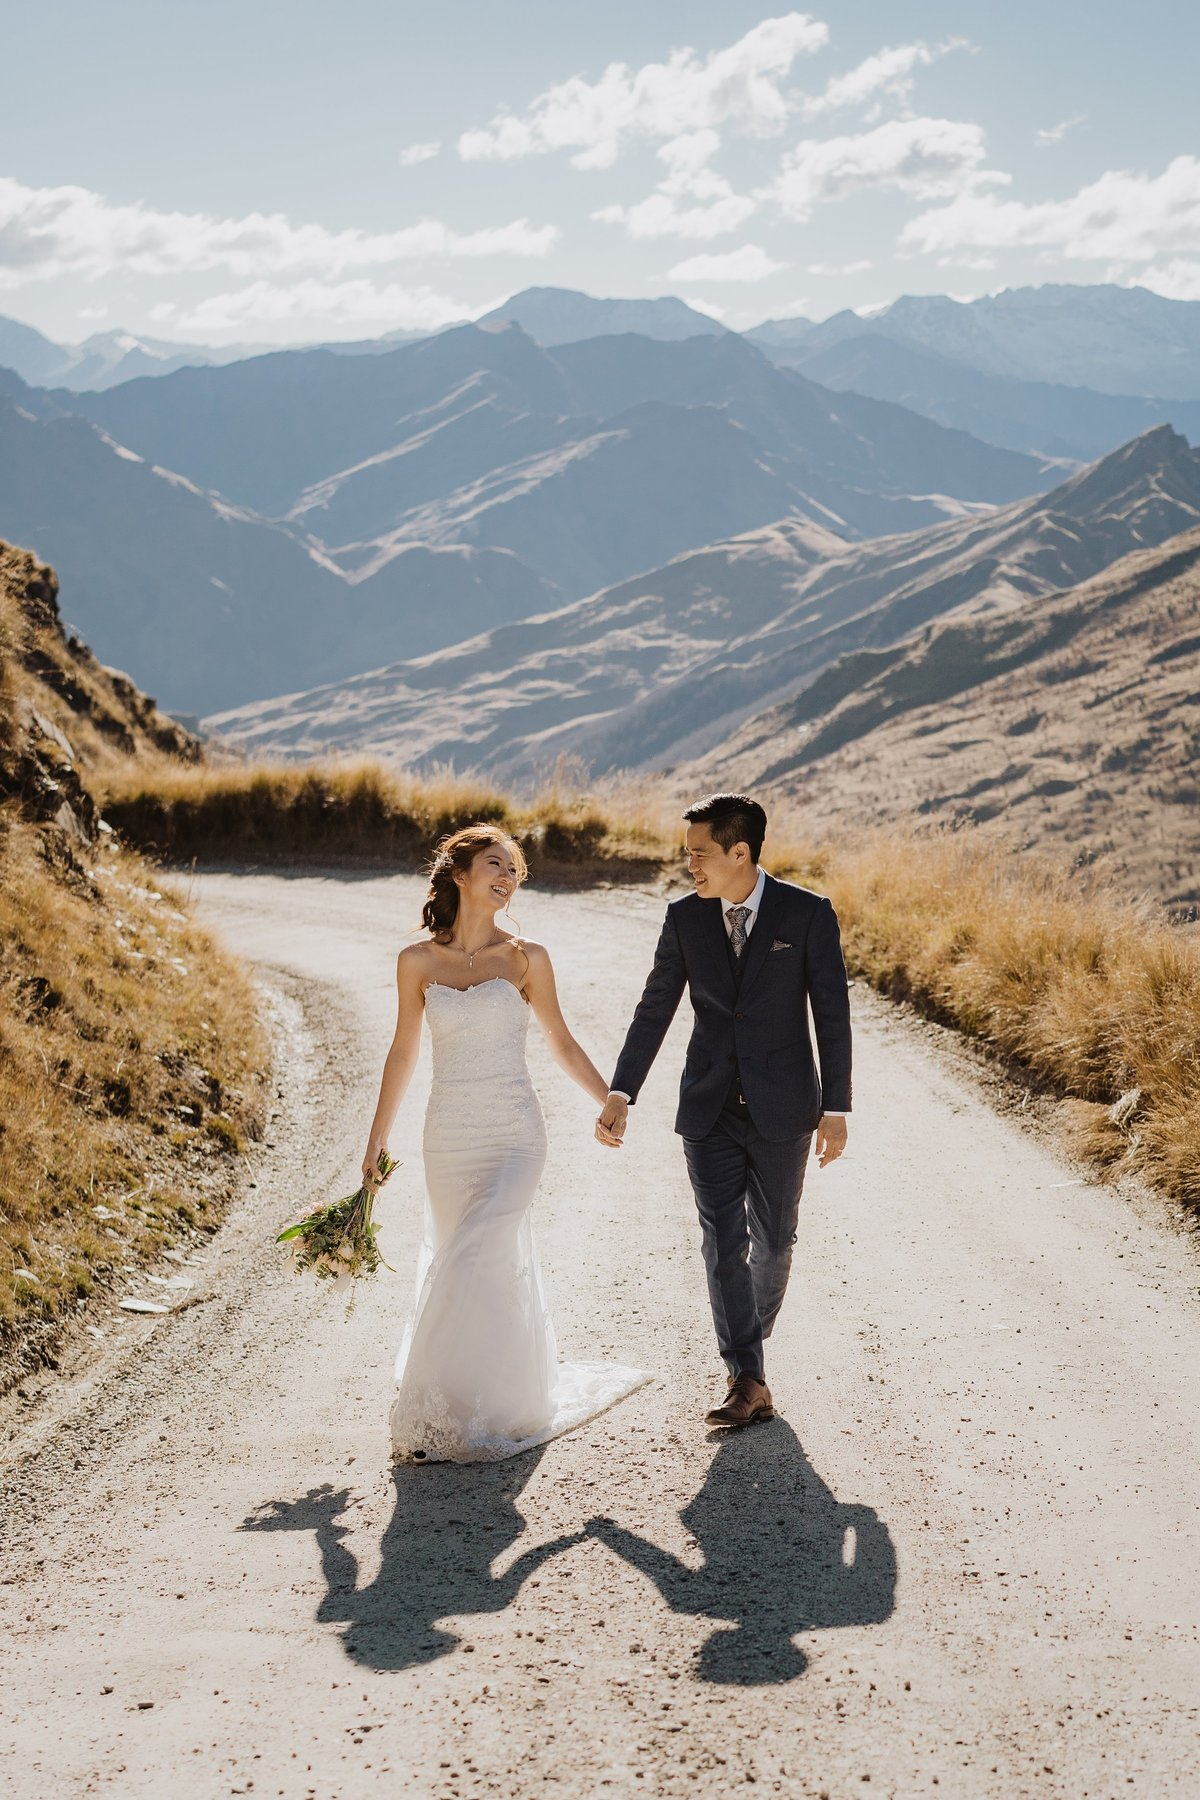 Bride and groom walking down a dirt road in the mountains